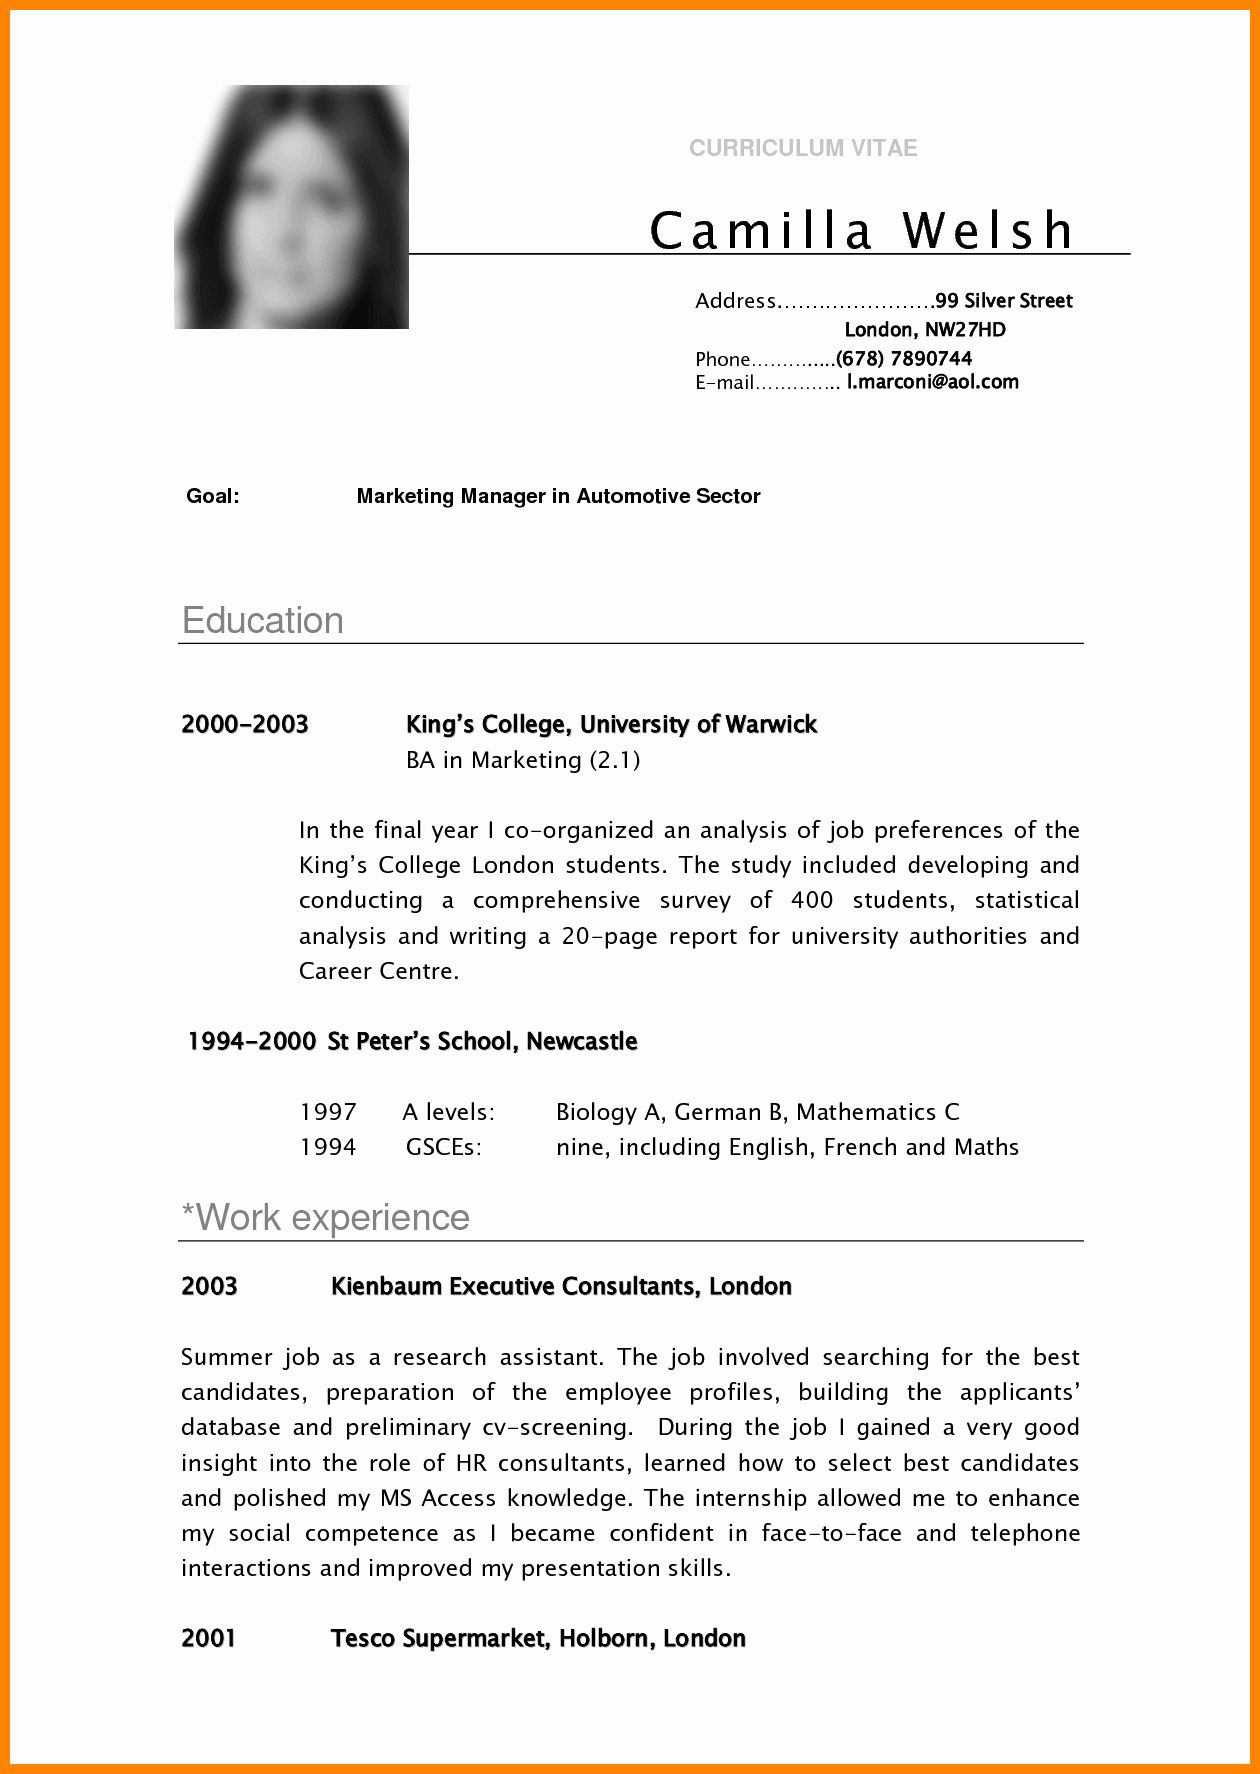 Resume Template College Student Fresh 5 Cv Samples For College Students Student Resume Template Student Resume Cover Letter For Resume